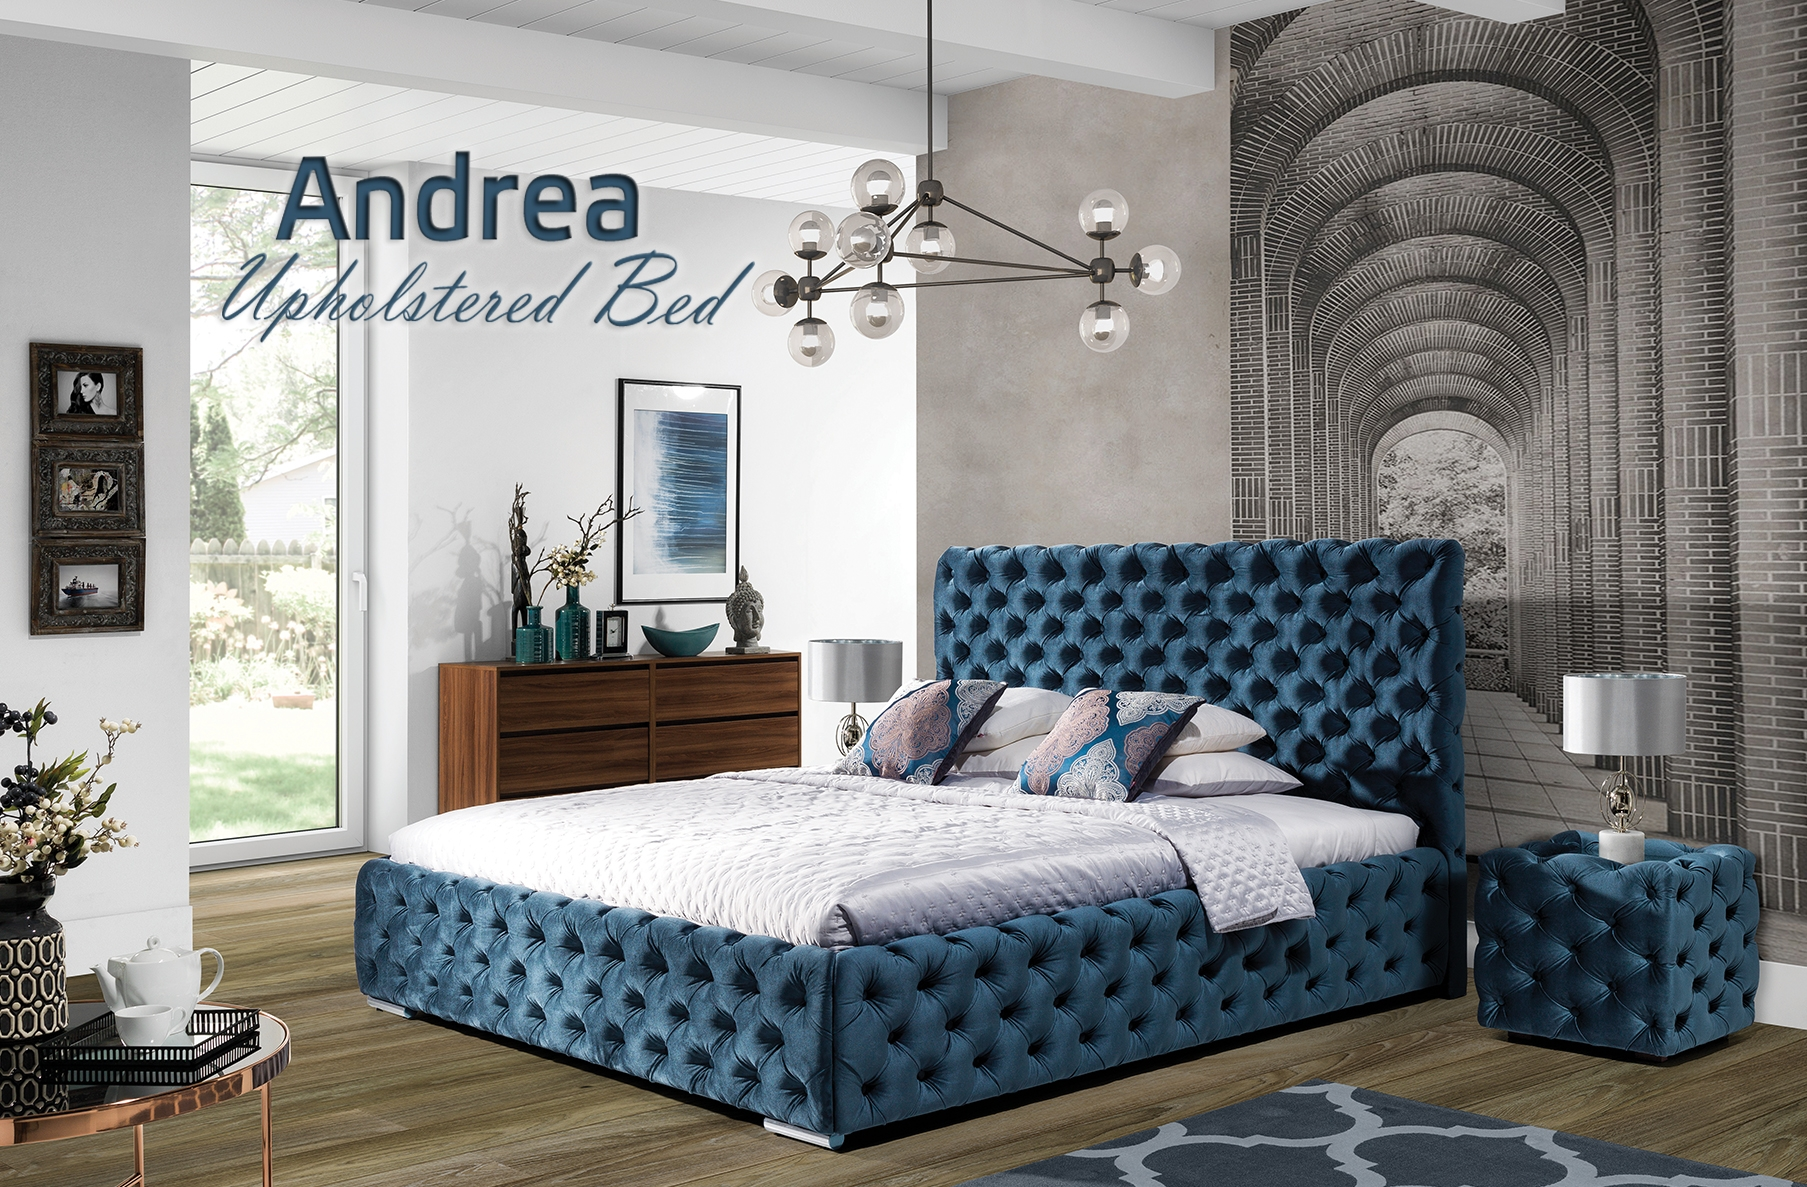 Andrea Bed, Cheap